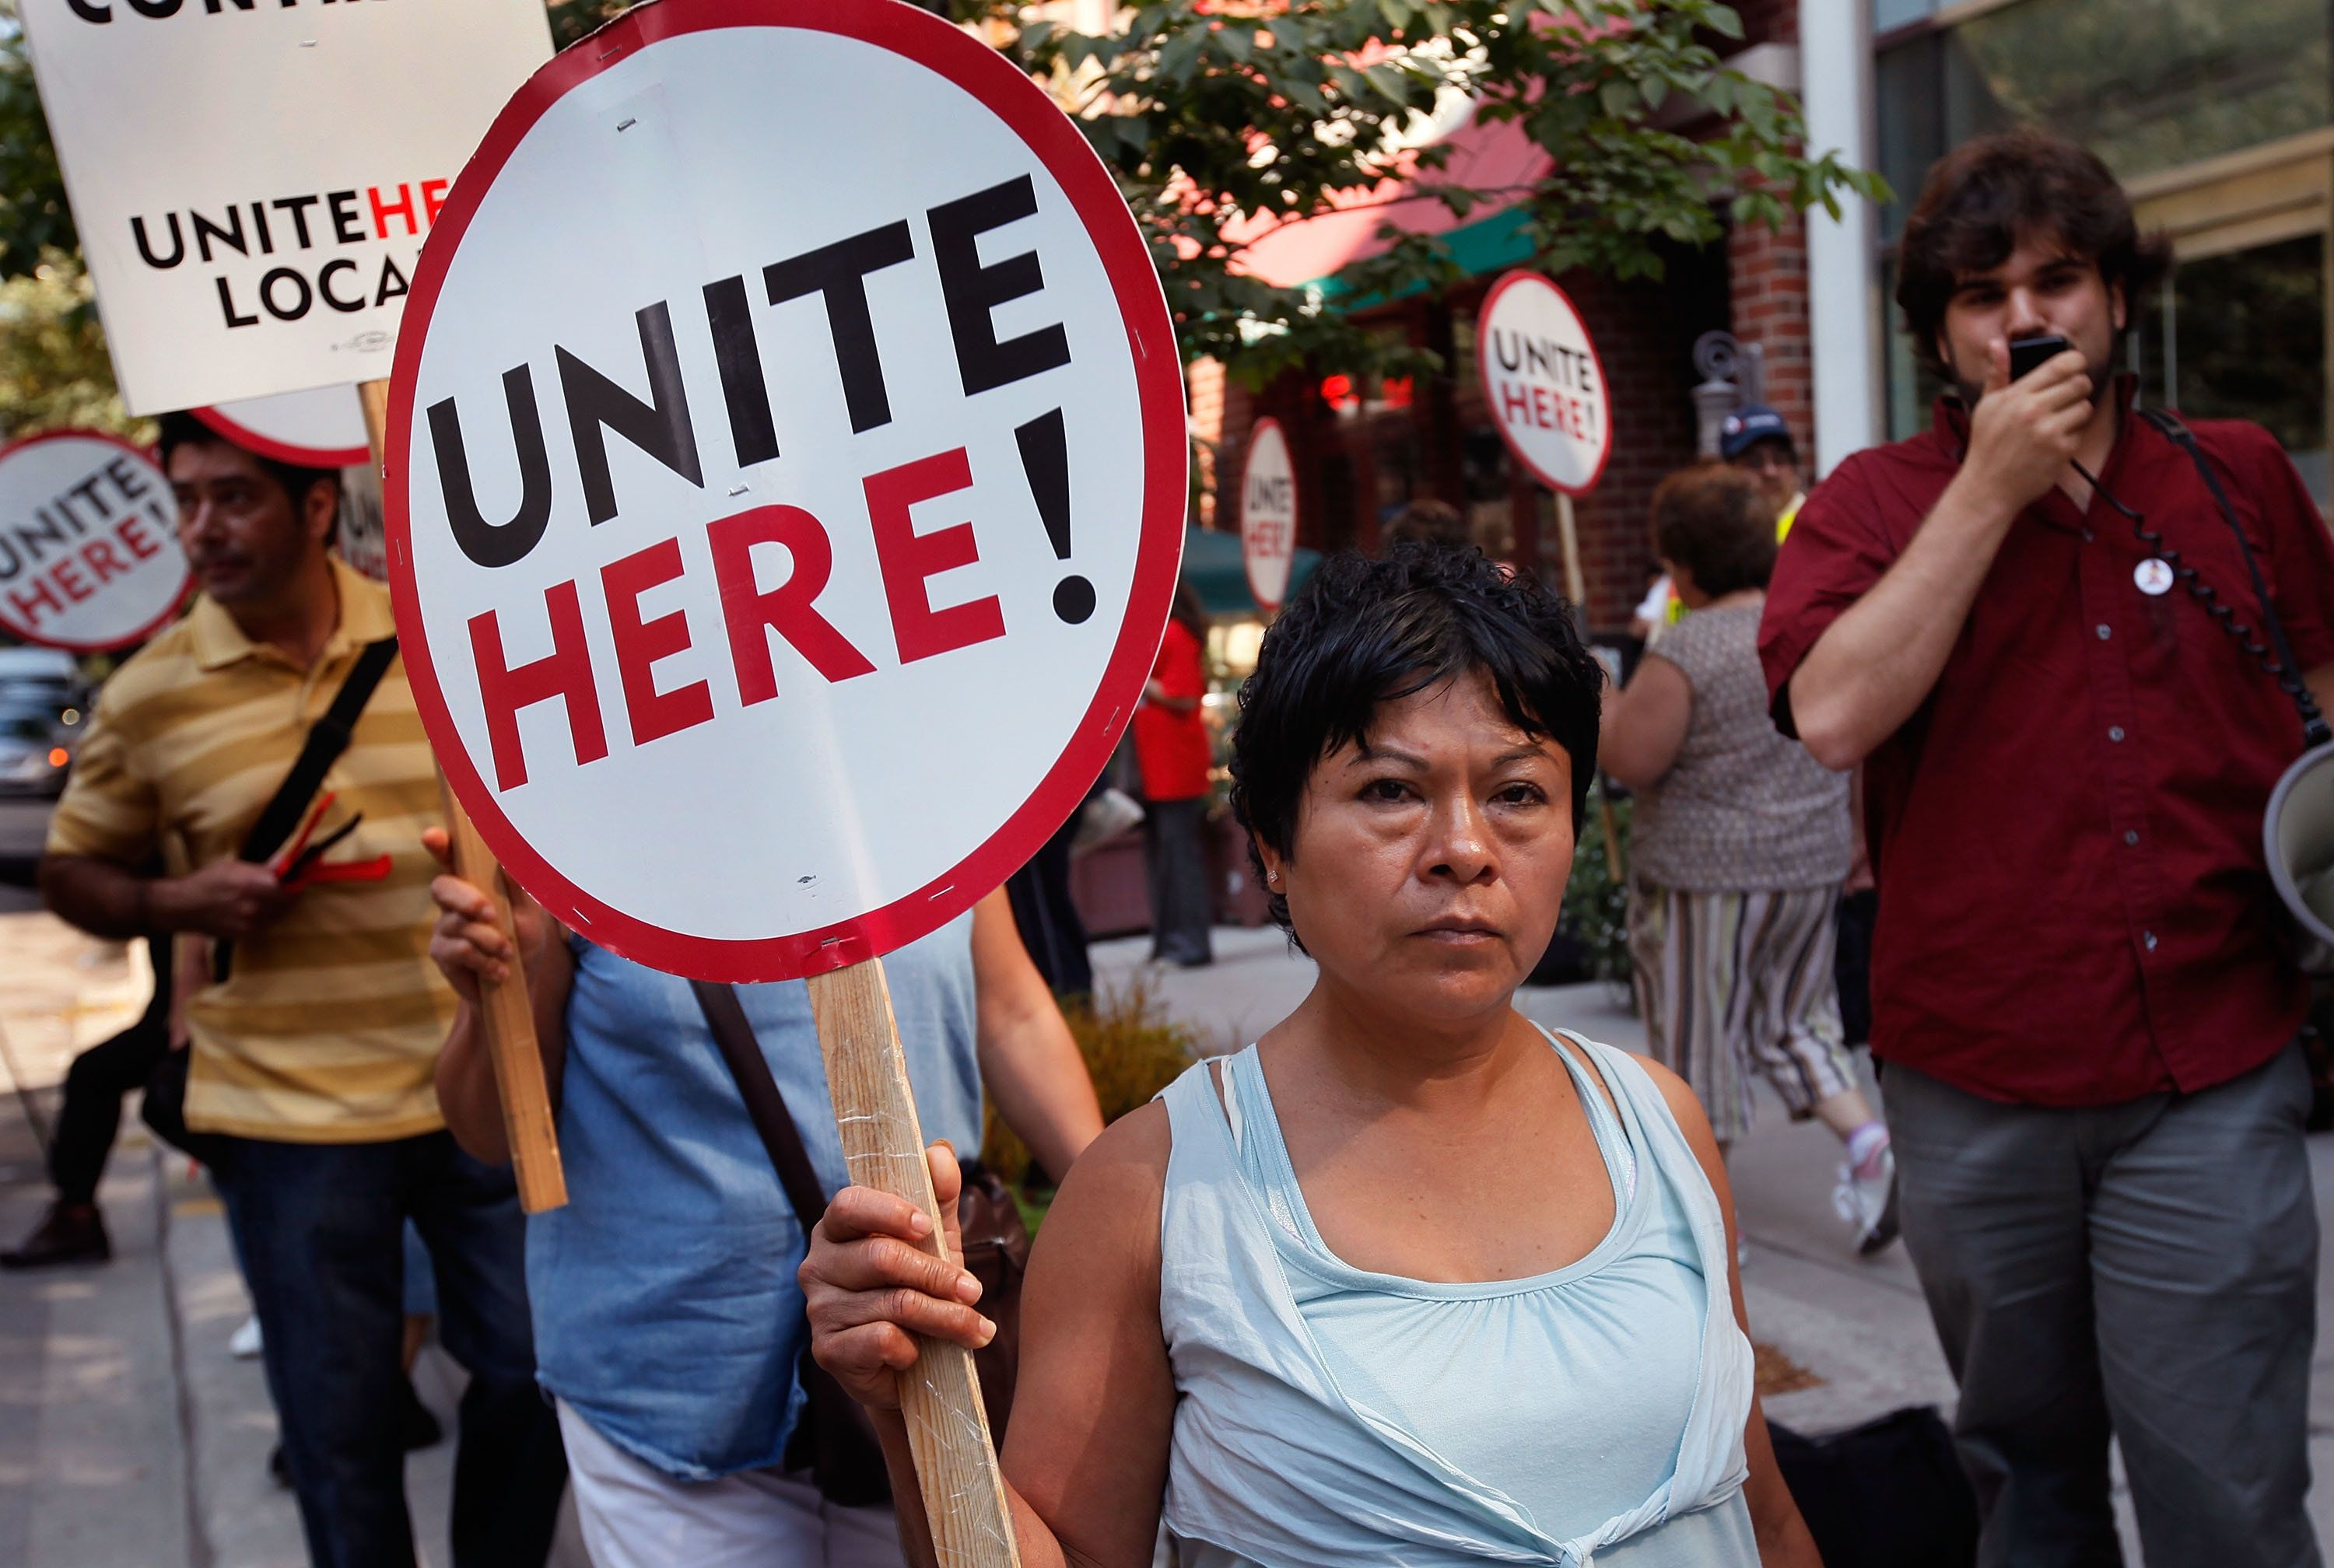 The hospitality workers union Unite Here has planned protests in 40 cities for Oct. 19.